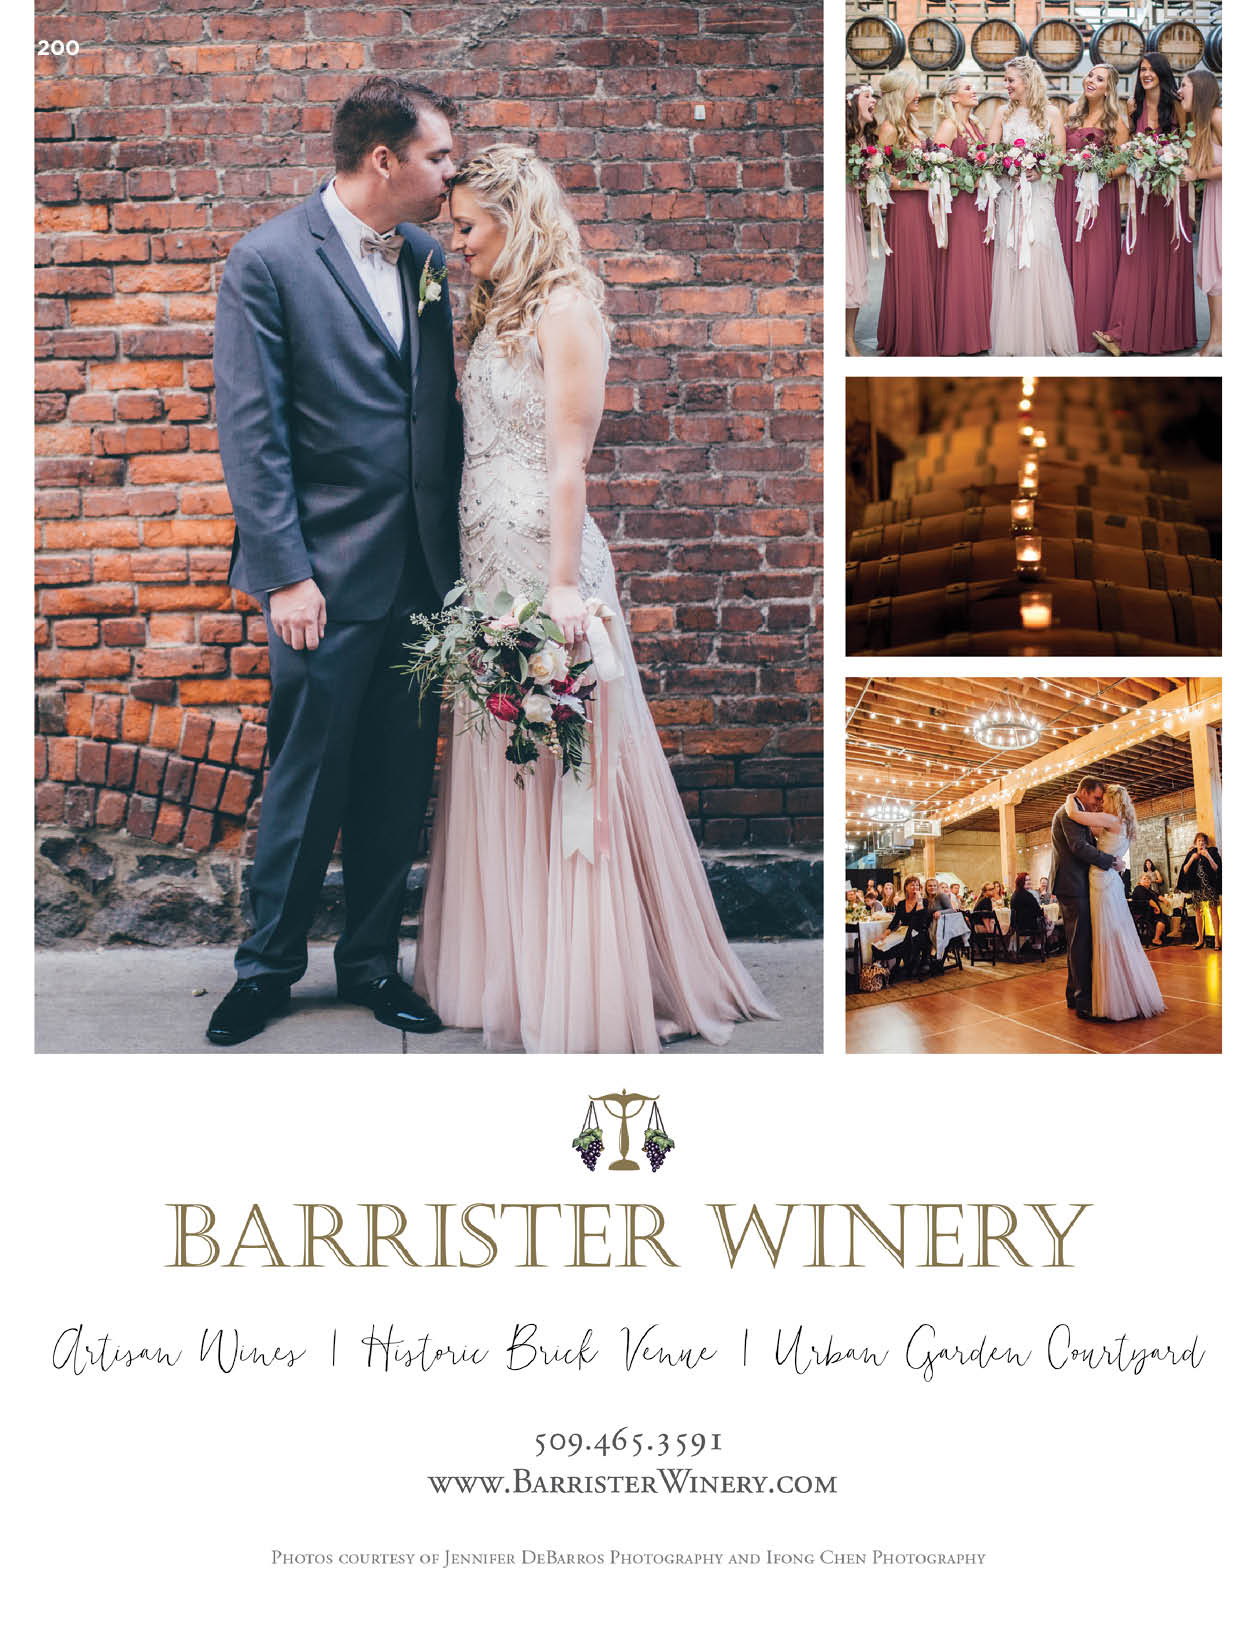 2017 Barrister Winery WRG